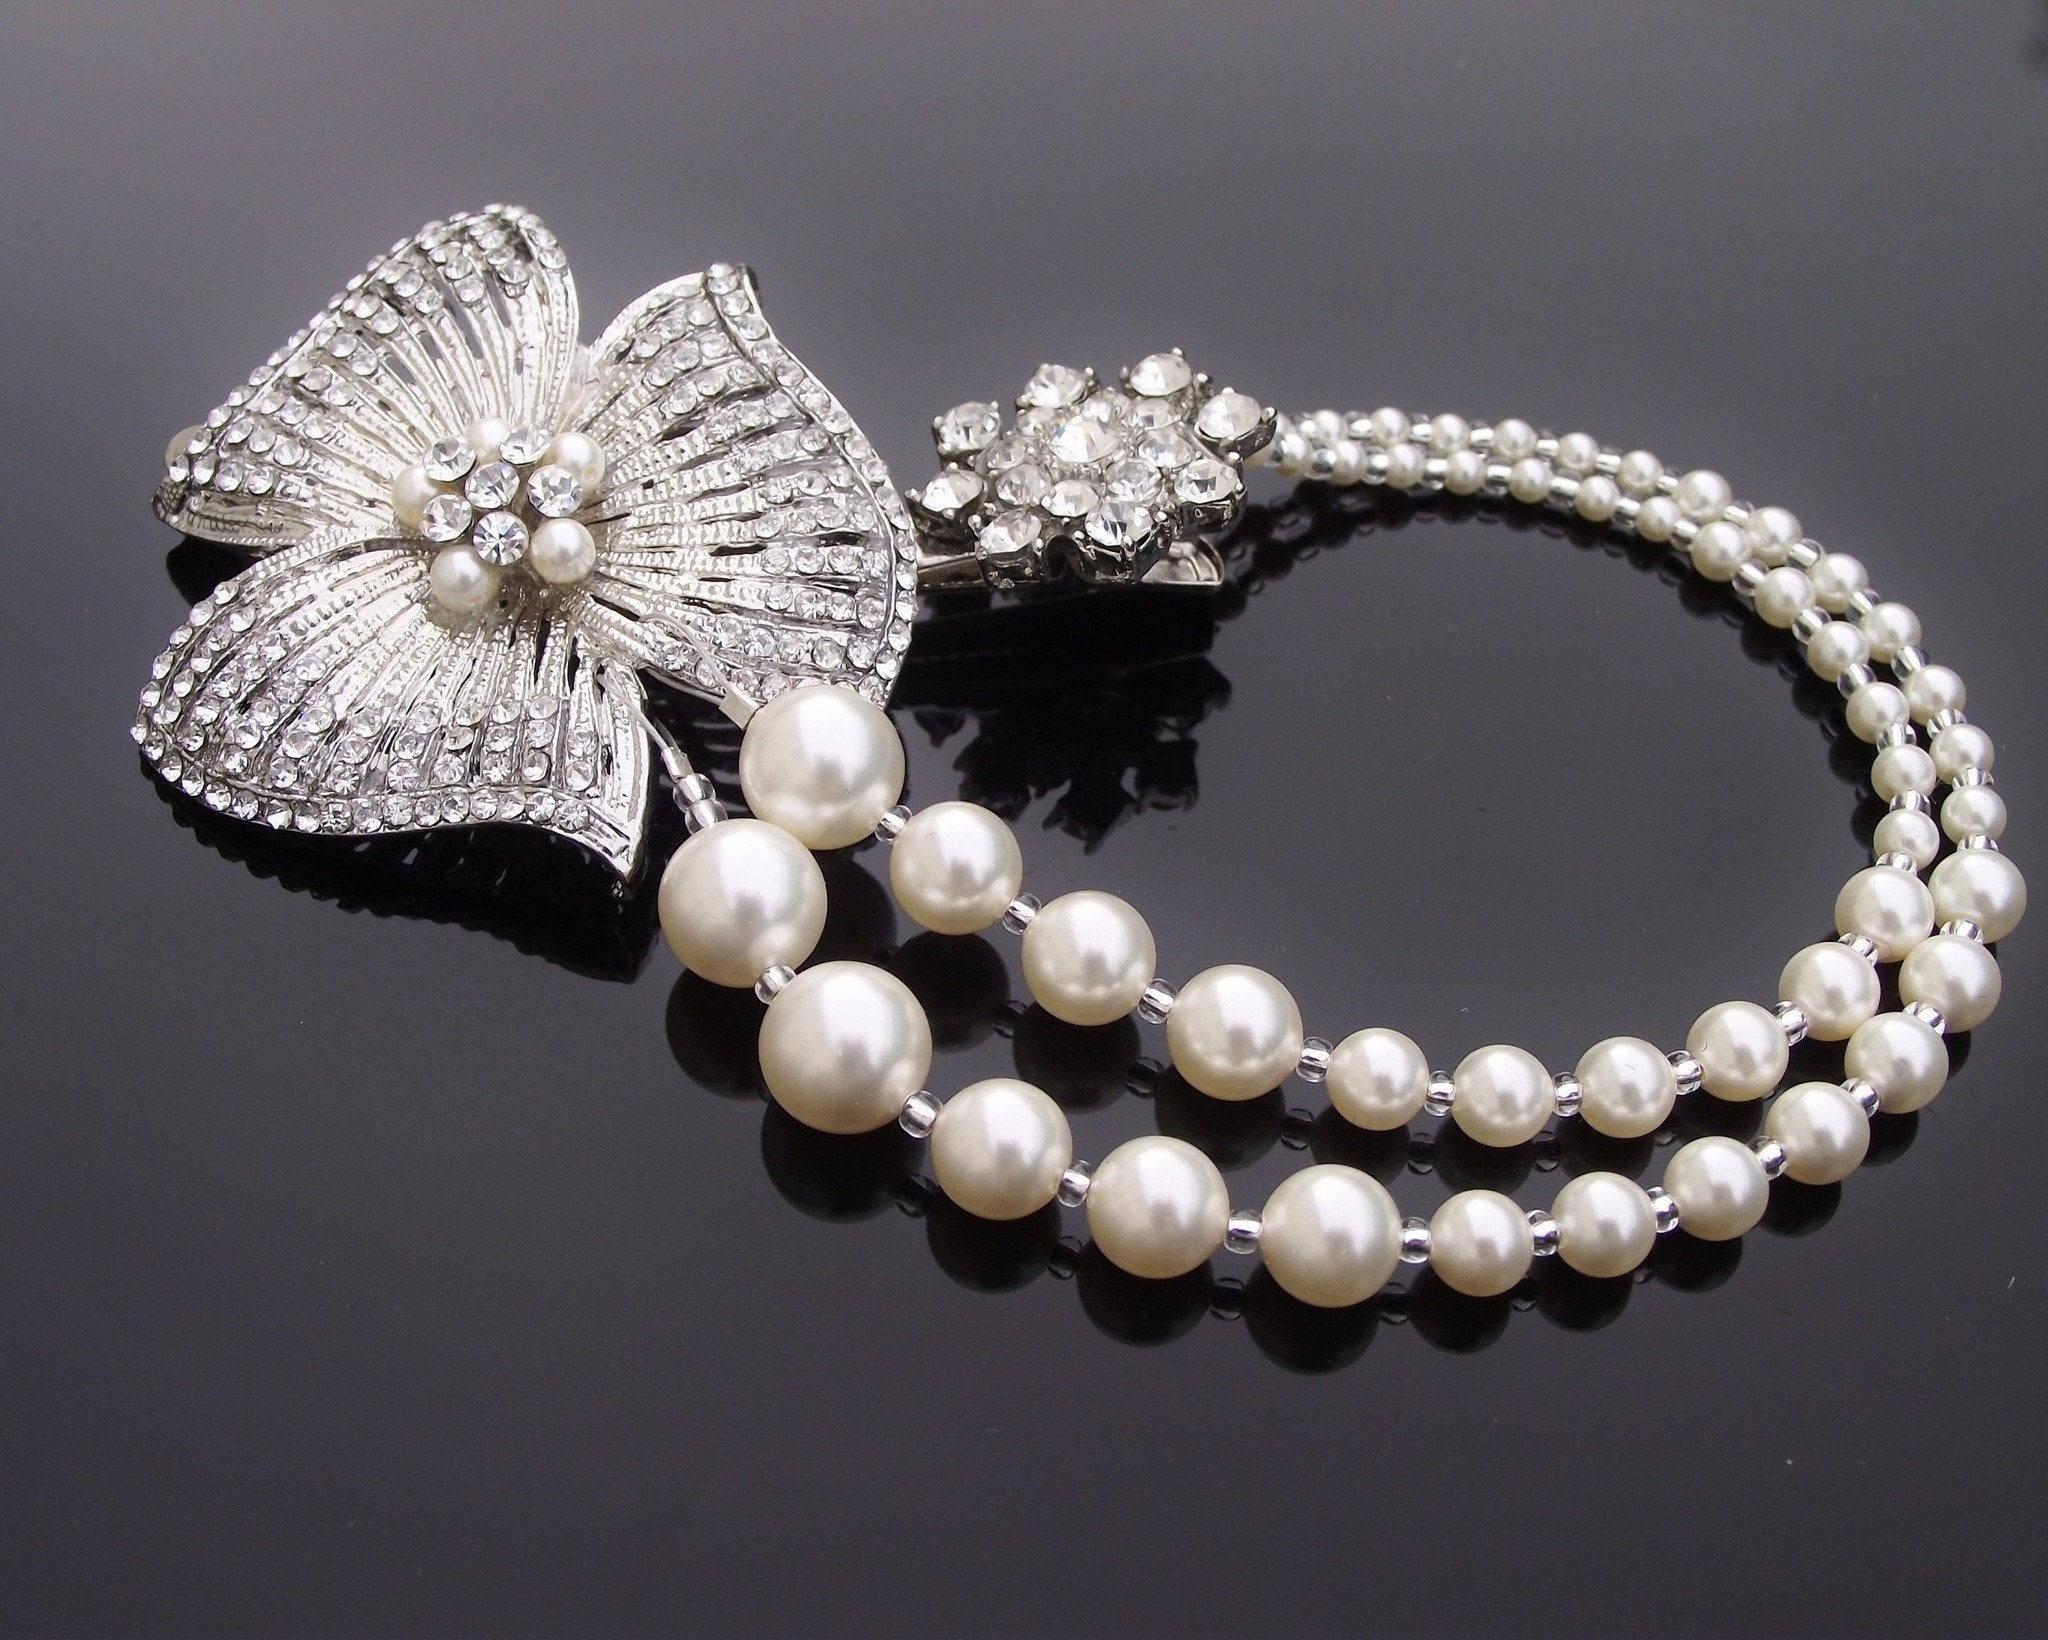 Pearl/Crystal Hair Drapes - 1920s Style Vintage Draping Hair Pearls, Featured In VOGUE UK, Jessica